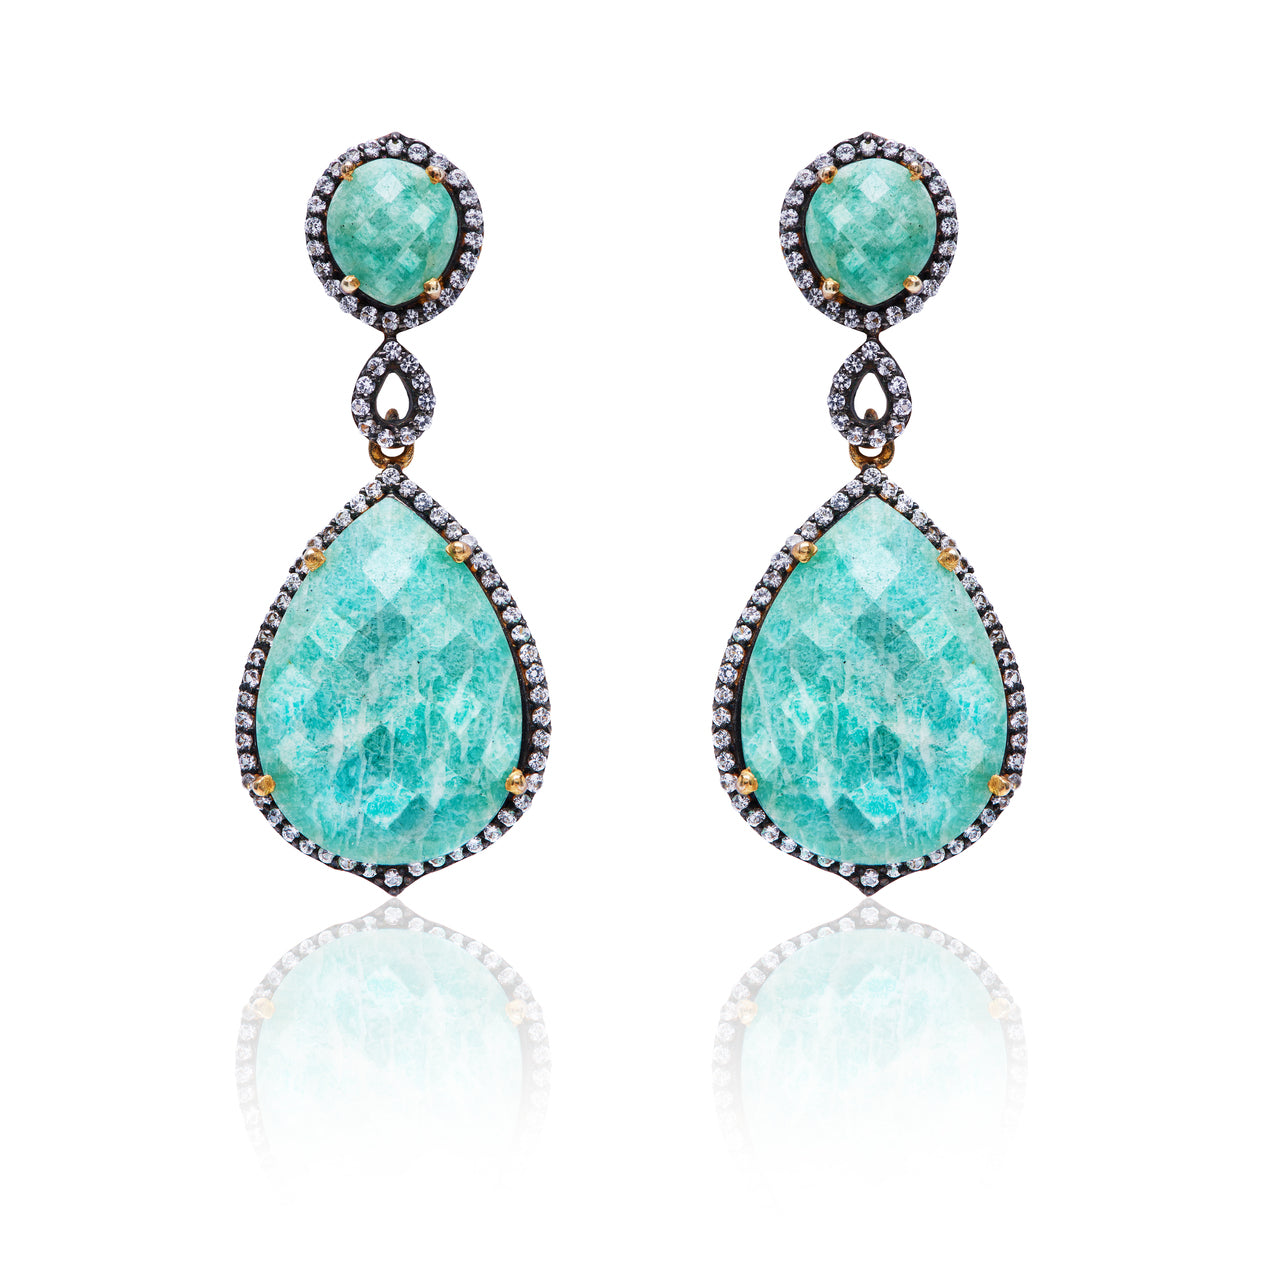 Faceted Amazonite White Topaz Statement Earrings